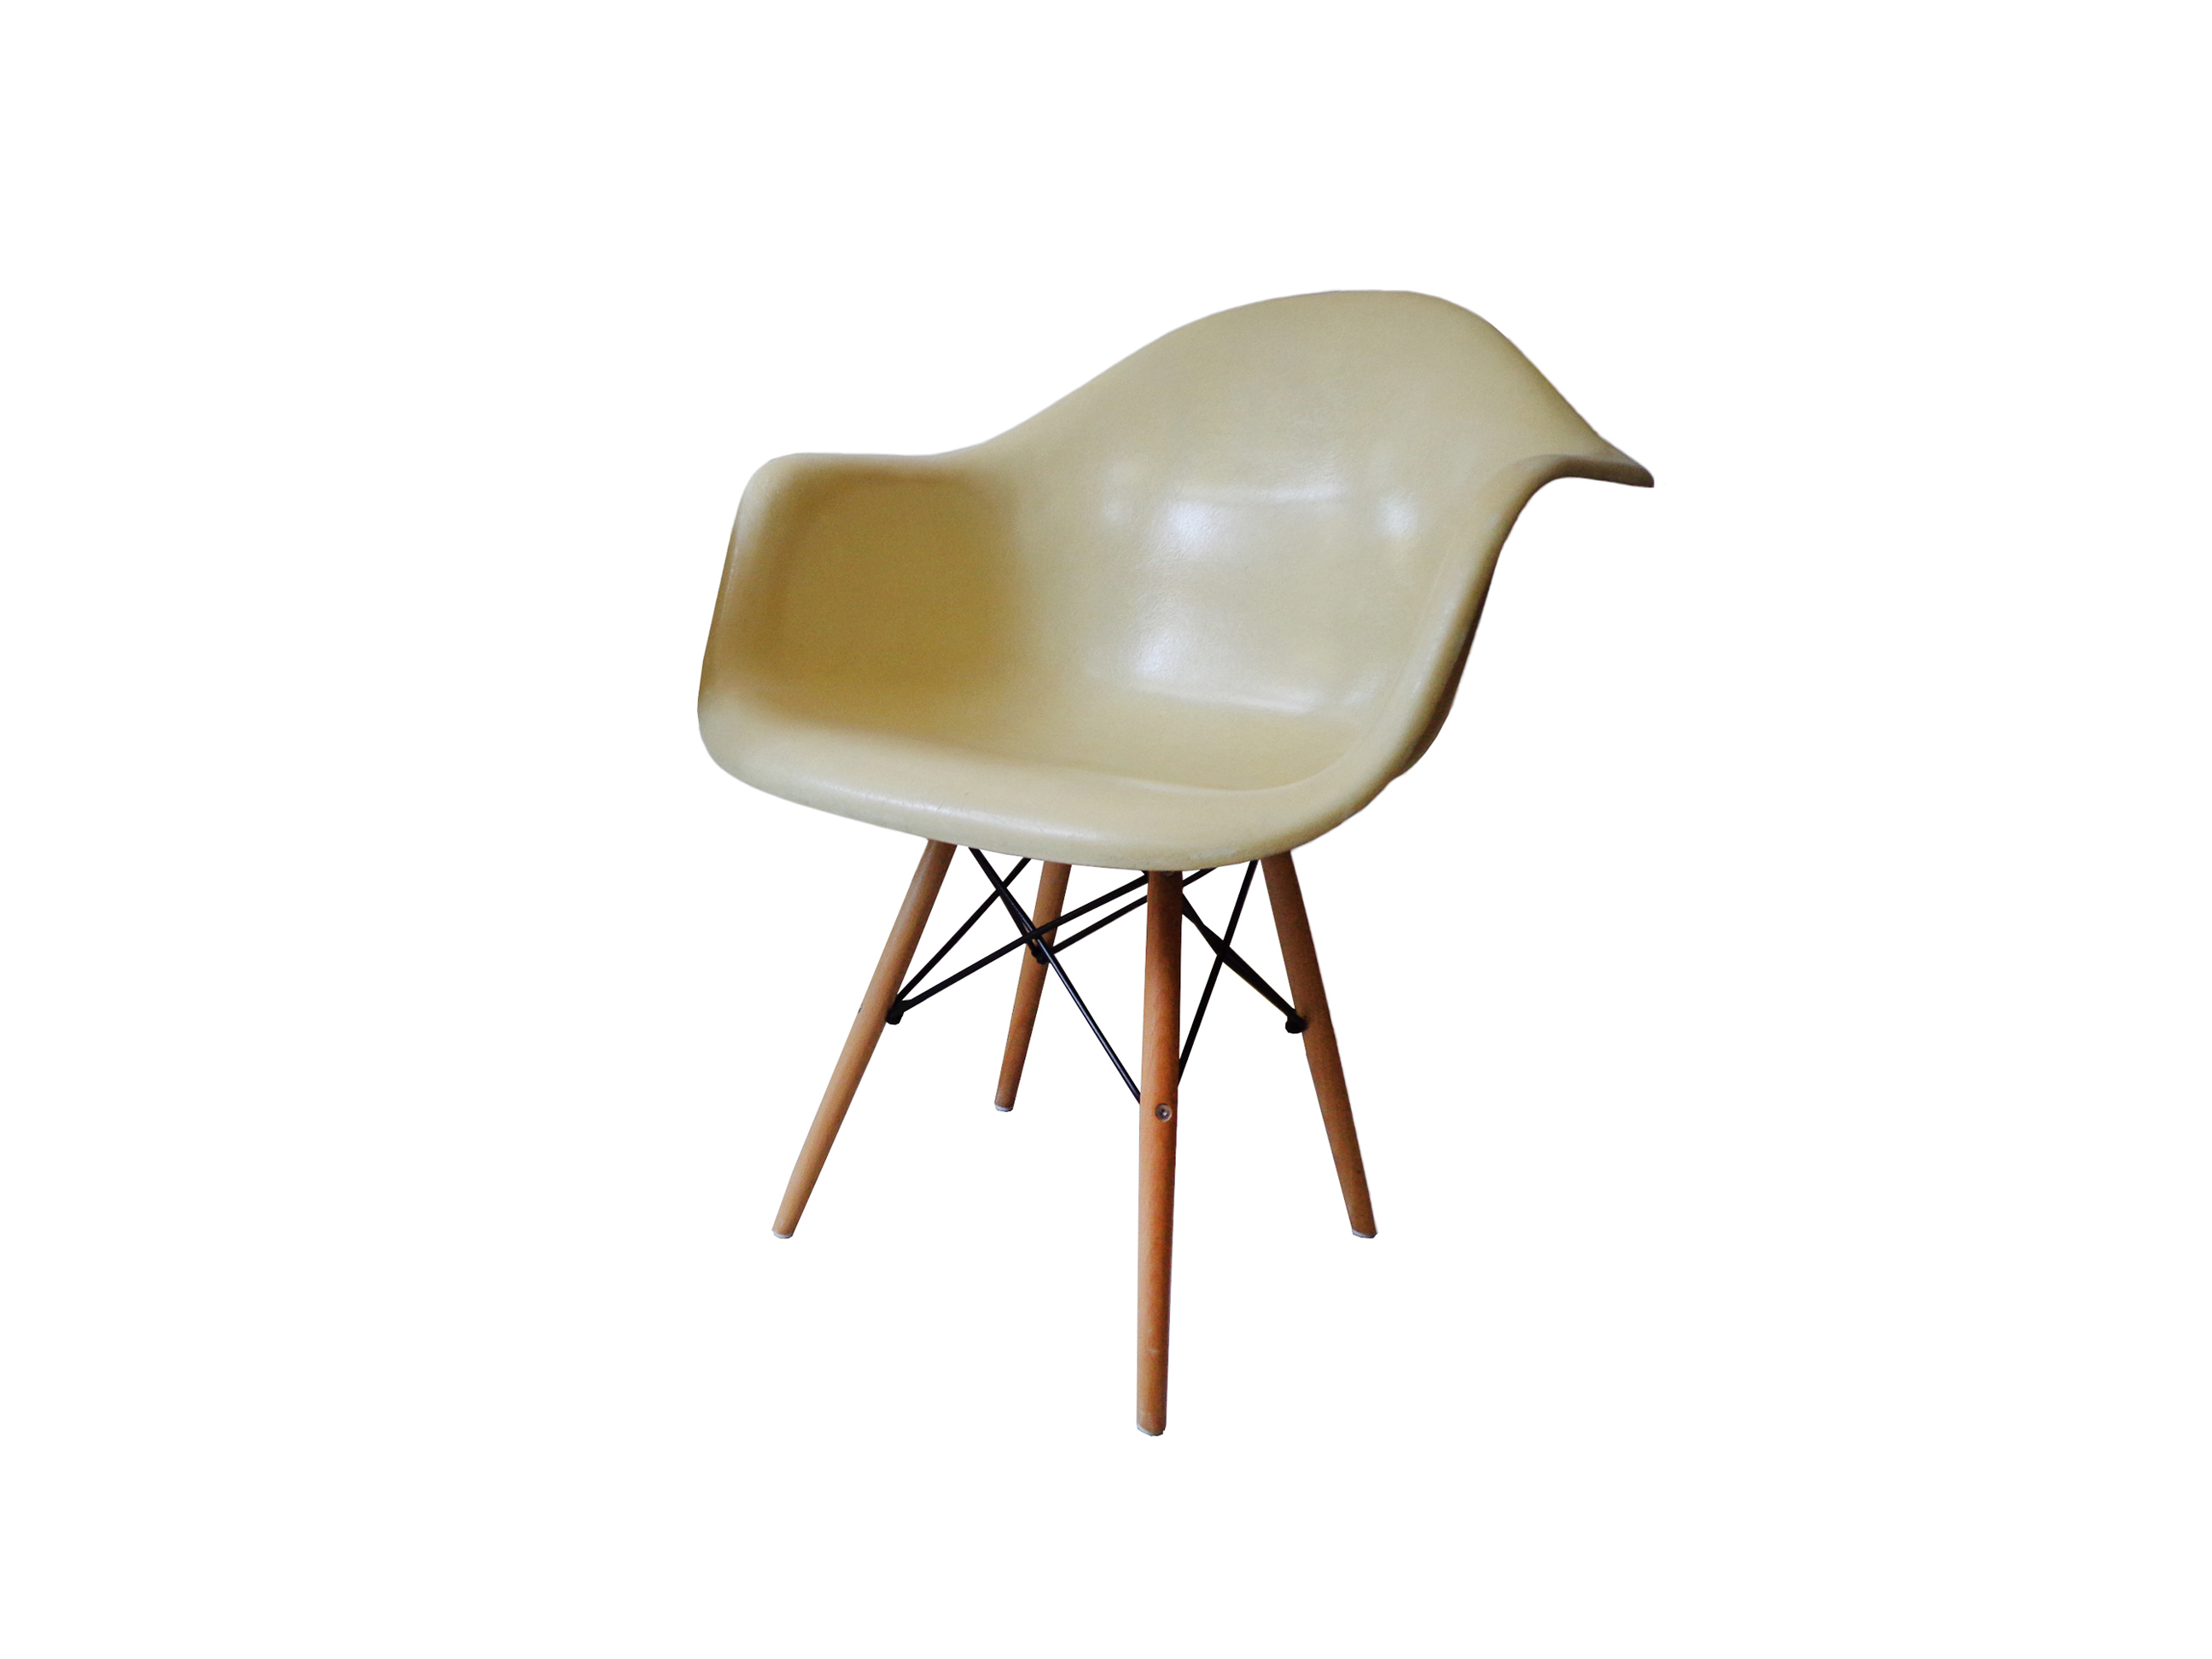 Fine Charles And Ray Eames Furniture For Sale At Zitzo Amsterdam Ocoug Best Dining Table And Chair Ideas Images Ocougorg